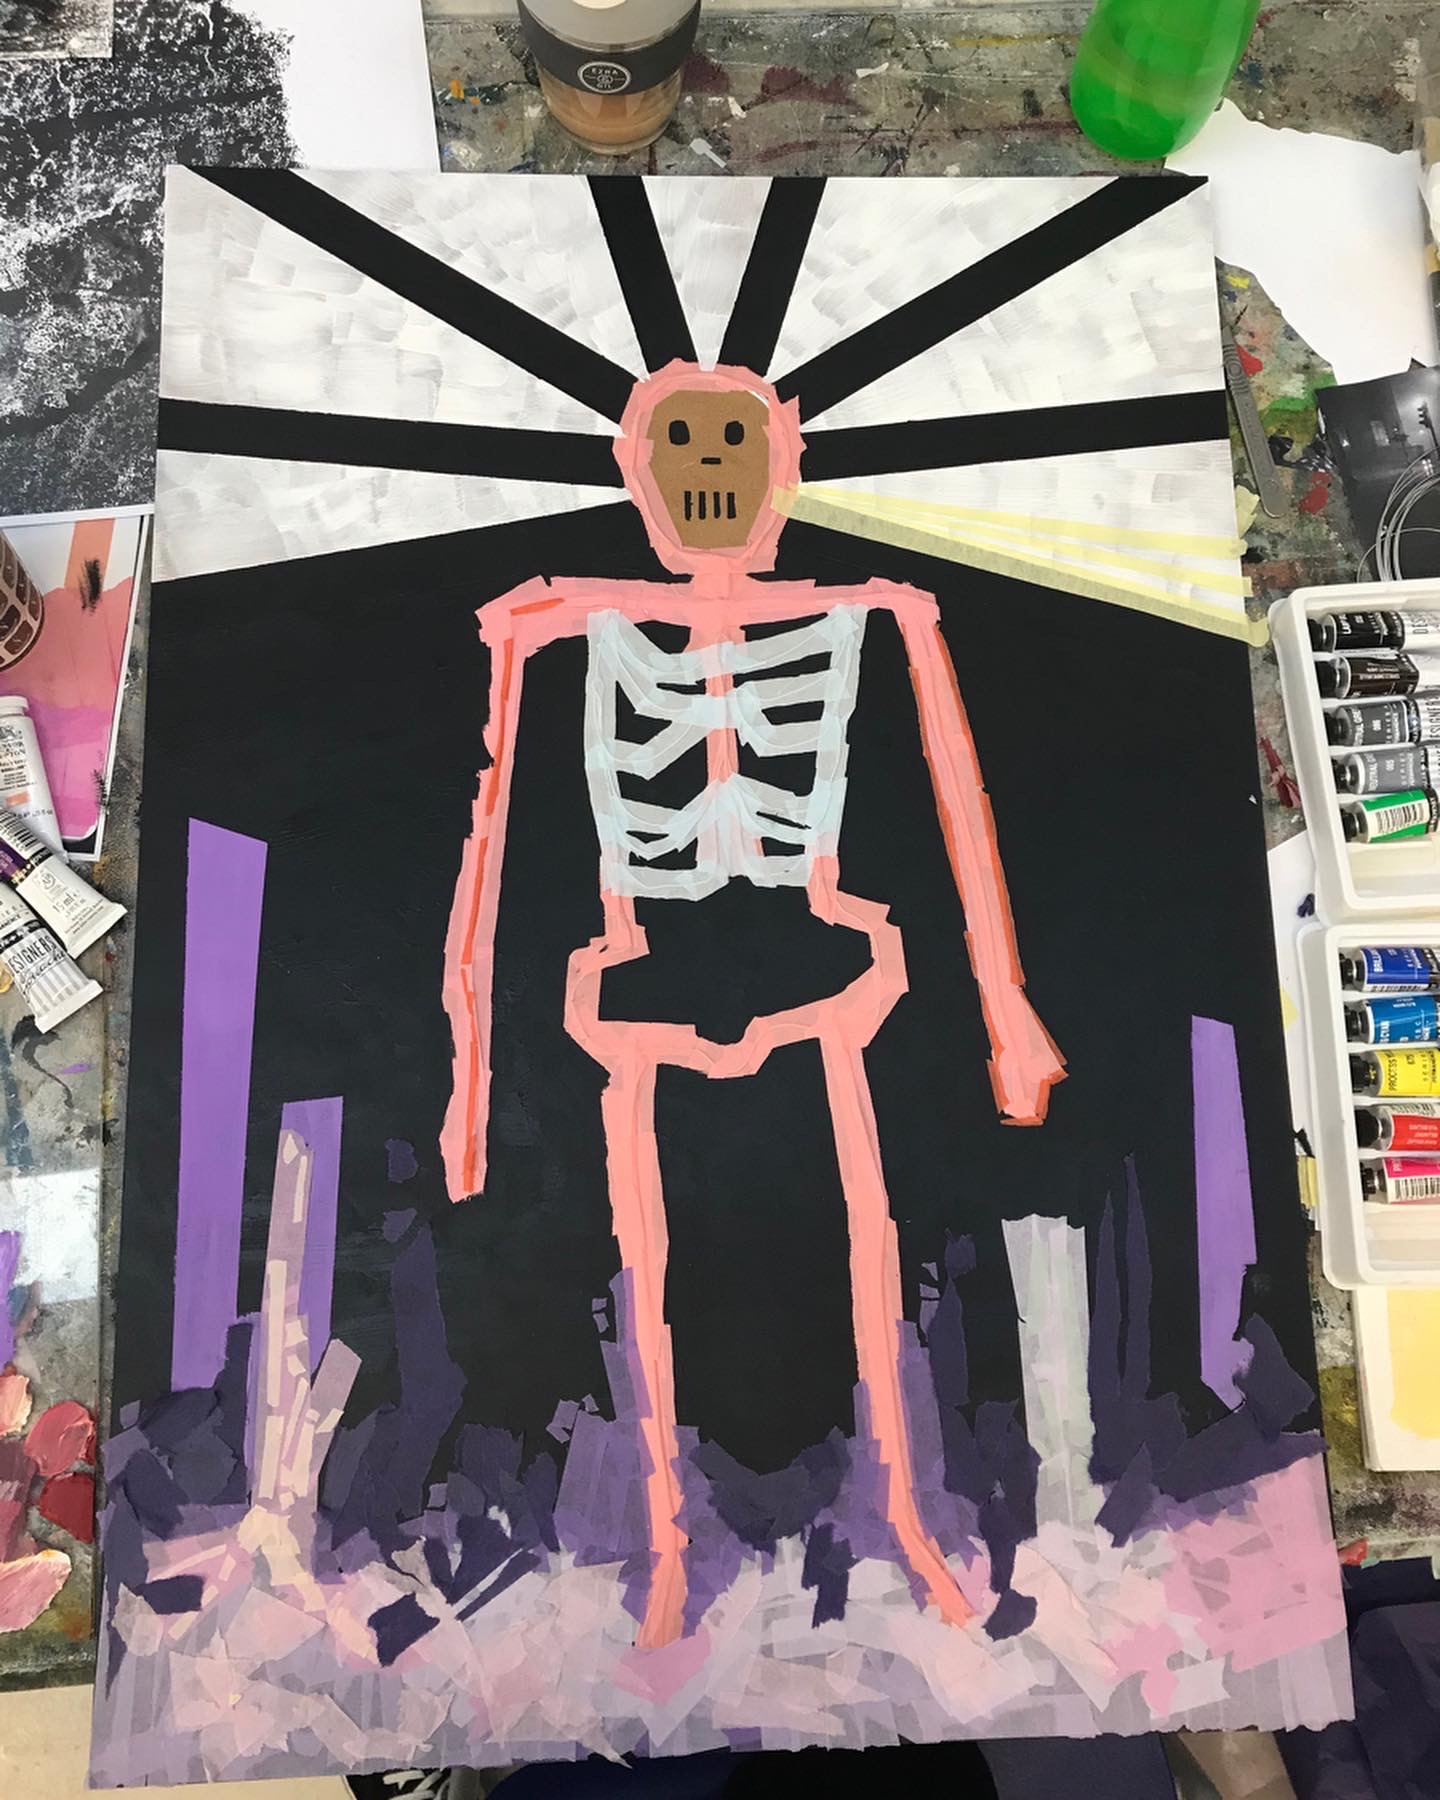 An image of the outline of a skeleton using oil paint. The skeleton stencil has been done with pink oil paint against a black board with purple streaks and lines at the bottom